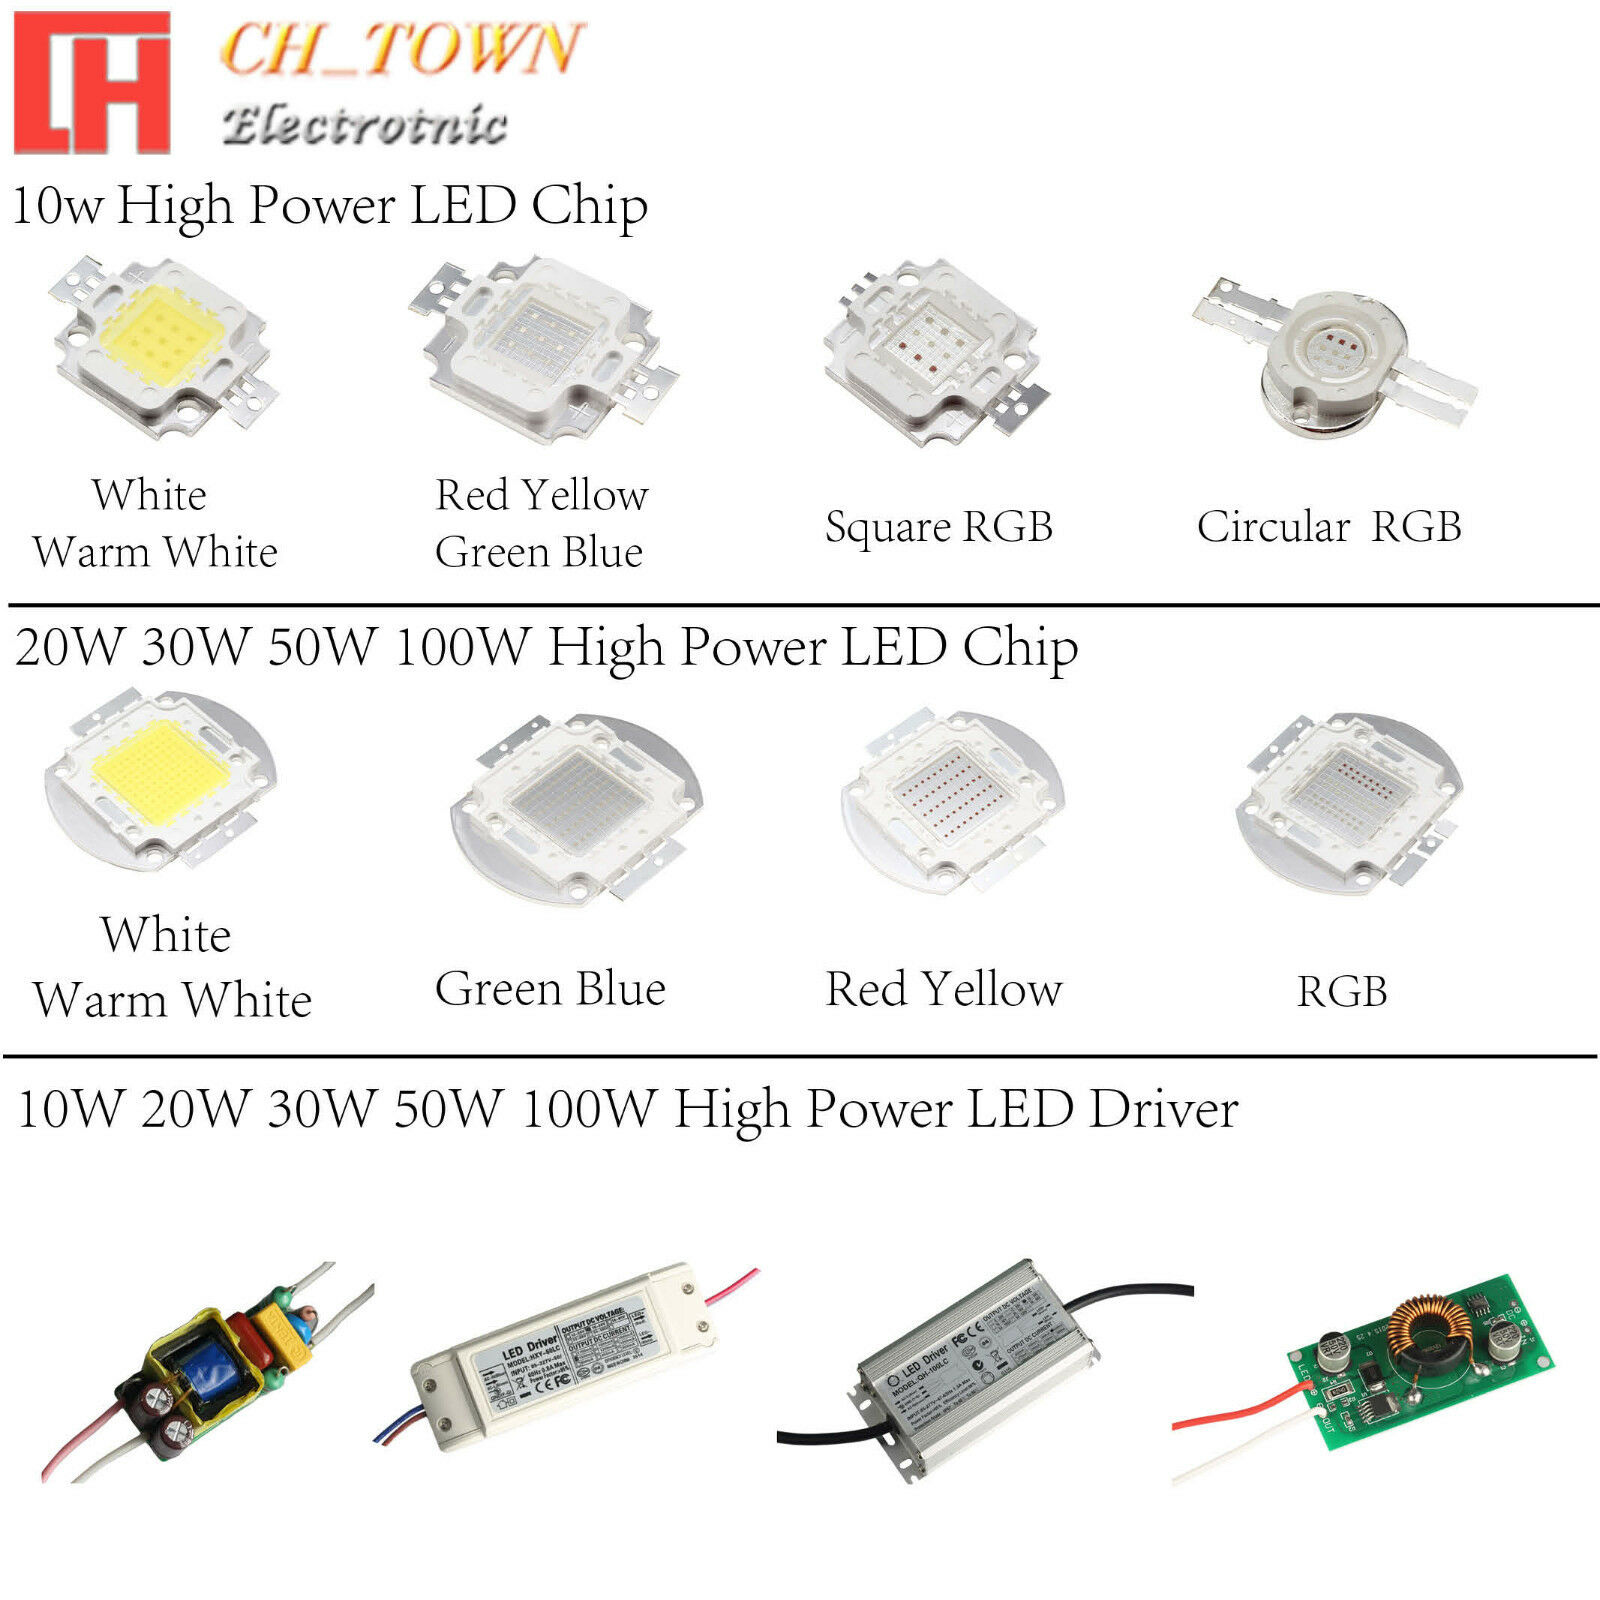 High Power 10w 20w 30w 50w 100w Led Smd Chip Cob Lamp Driver 4w 12v Fluorescent 1 Of 9free Shipping